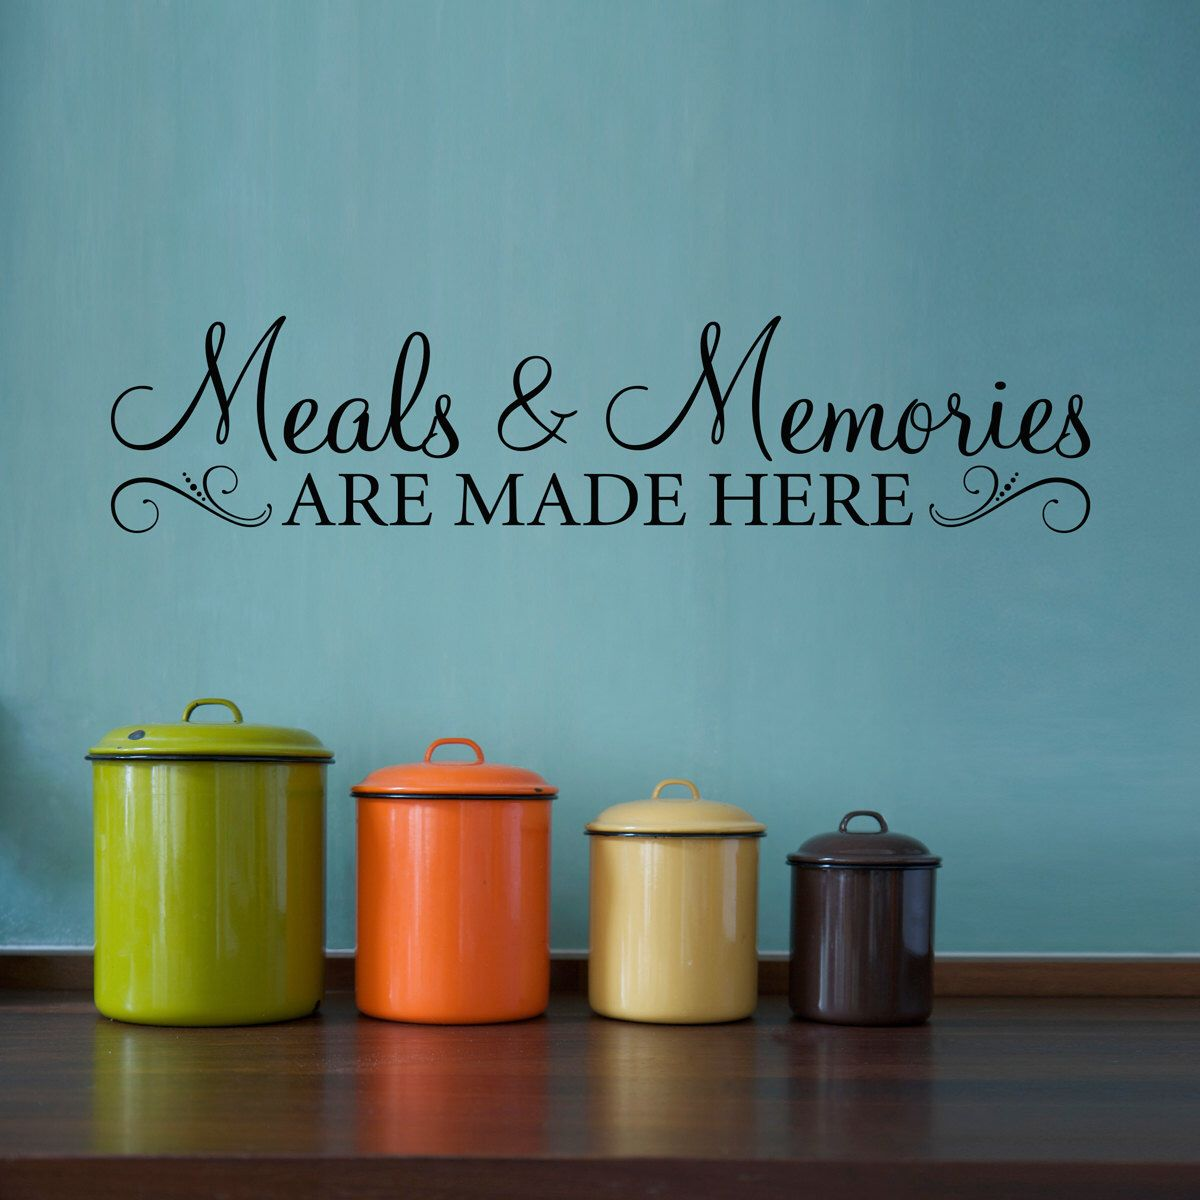 Quotes About Kitchens: Meals & Memories Decal